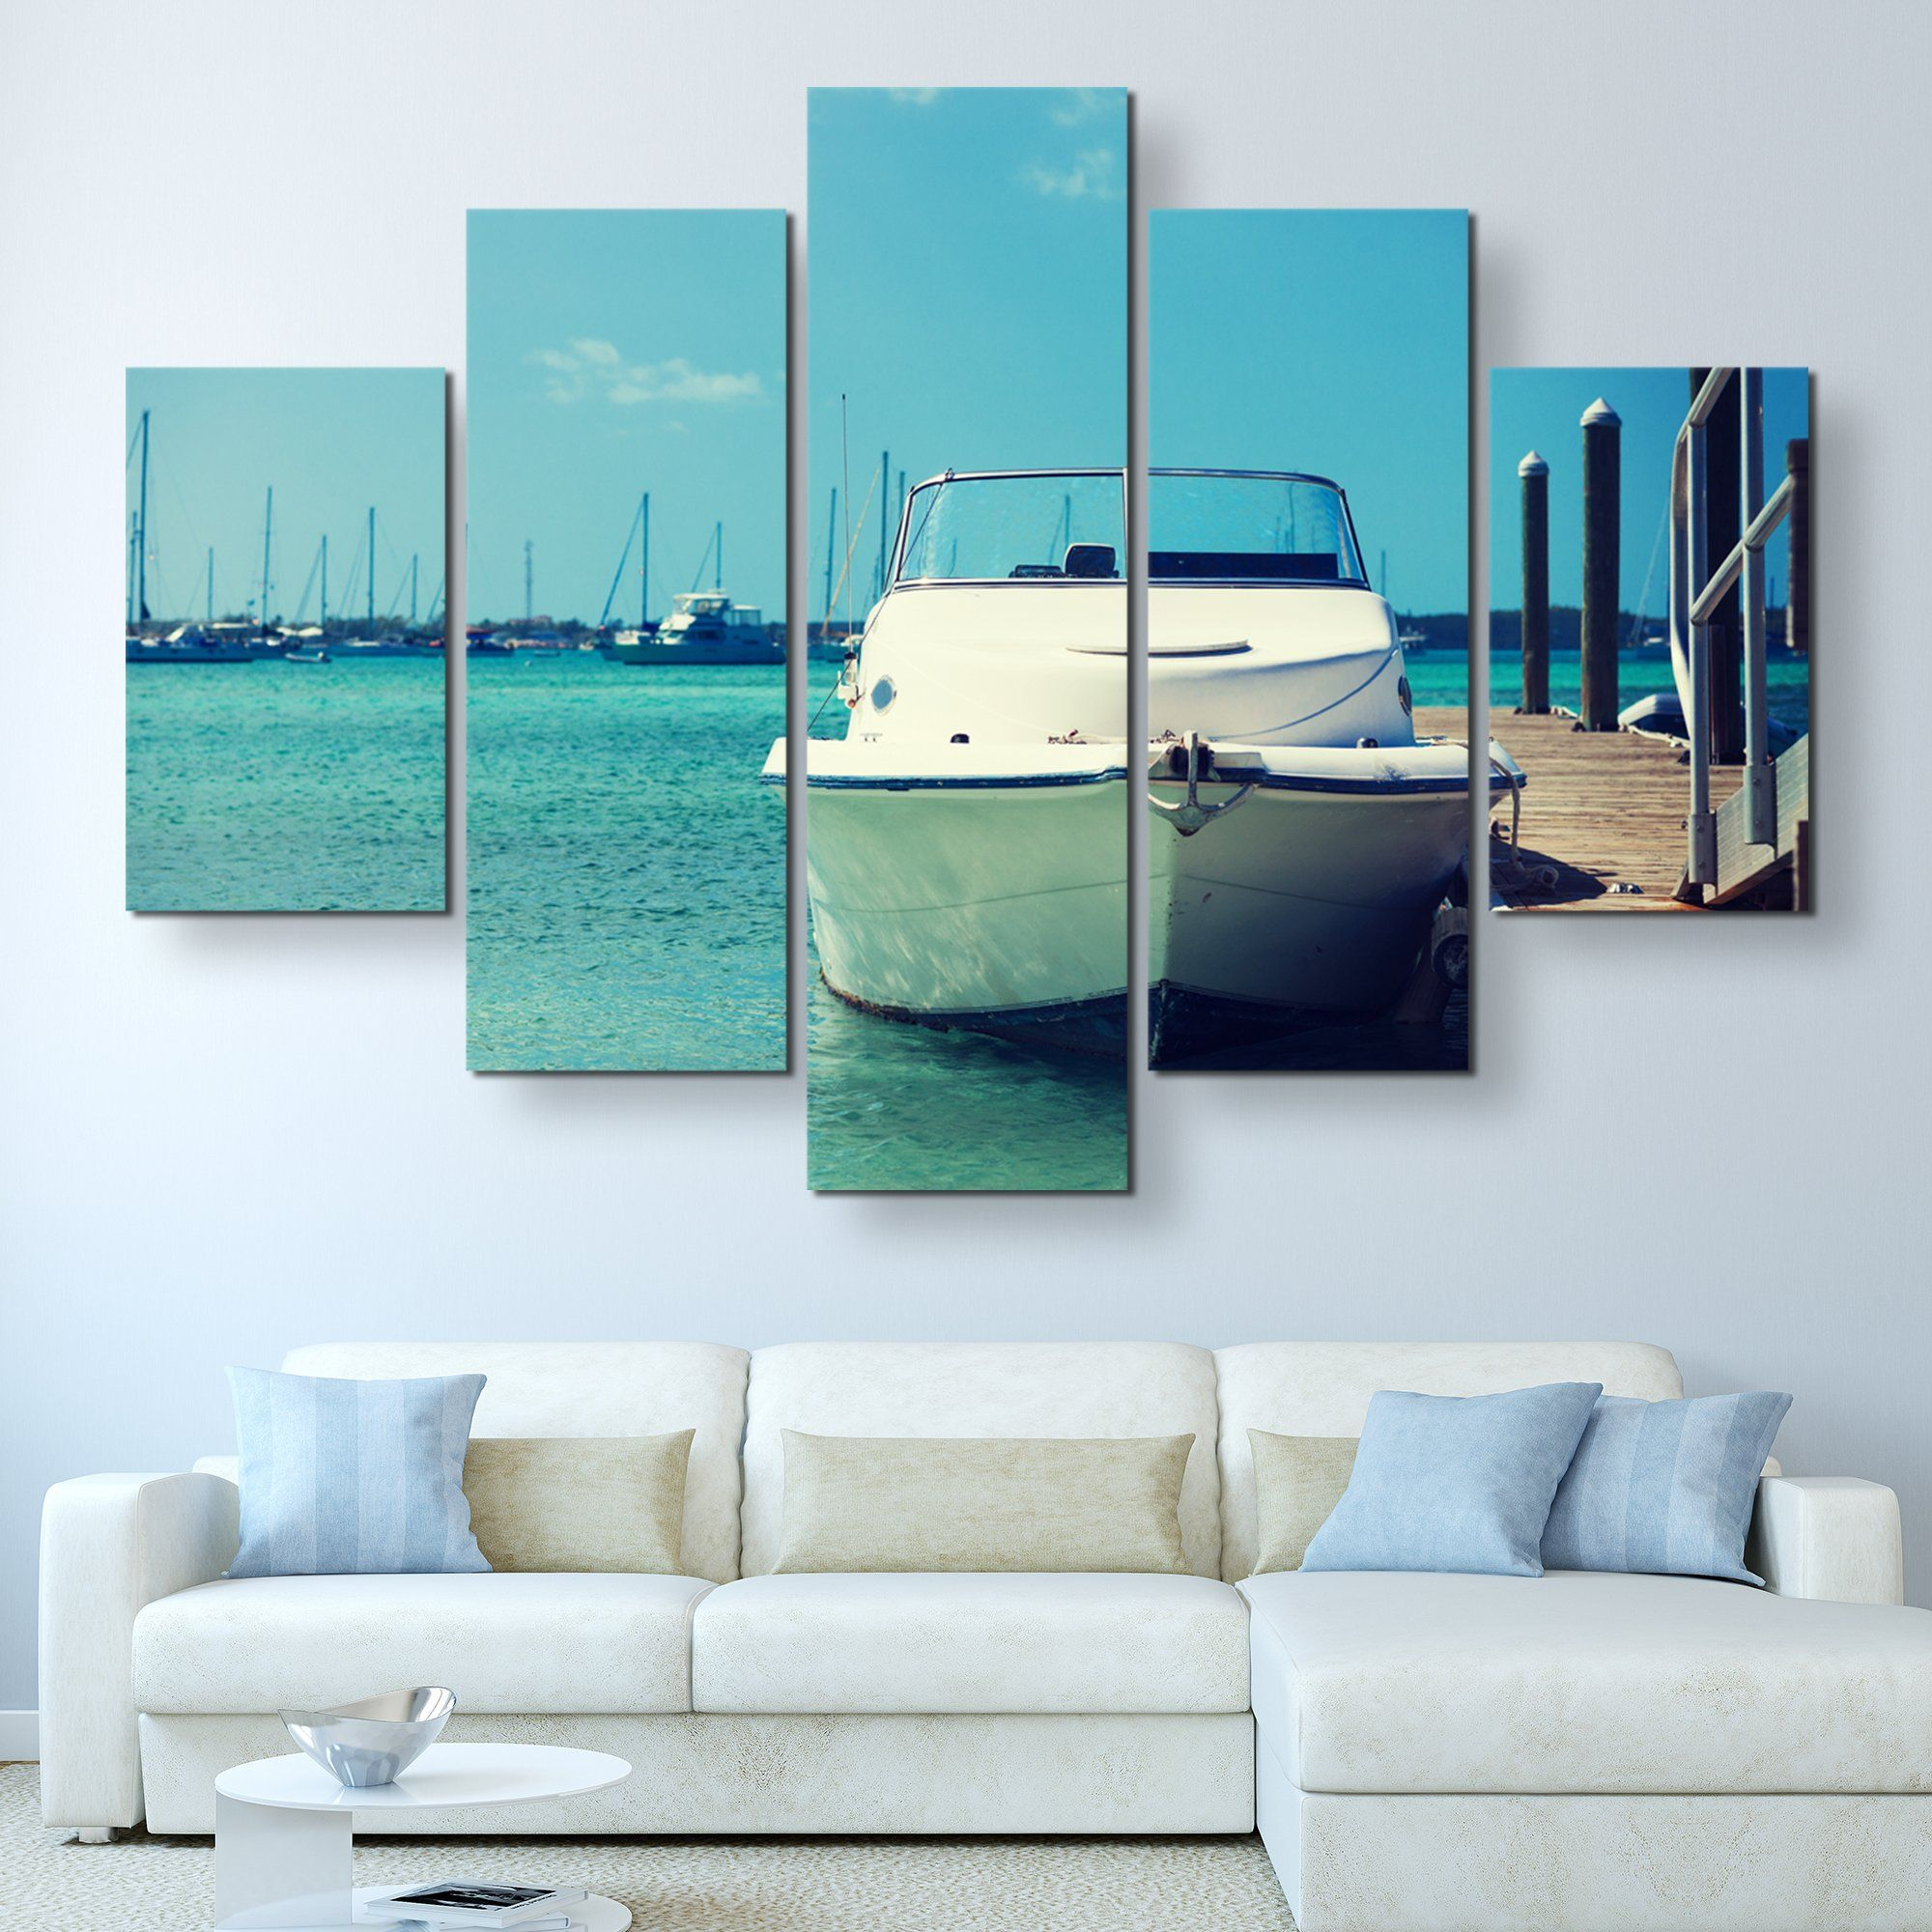 5 piece Travel and Sea wall art